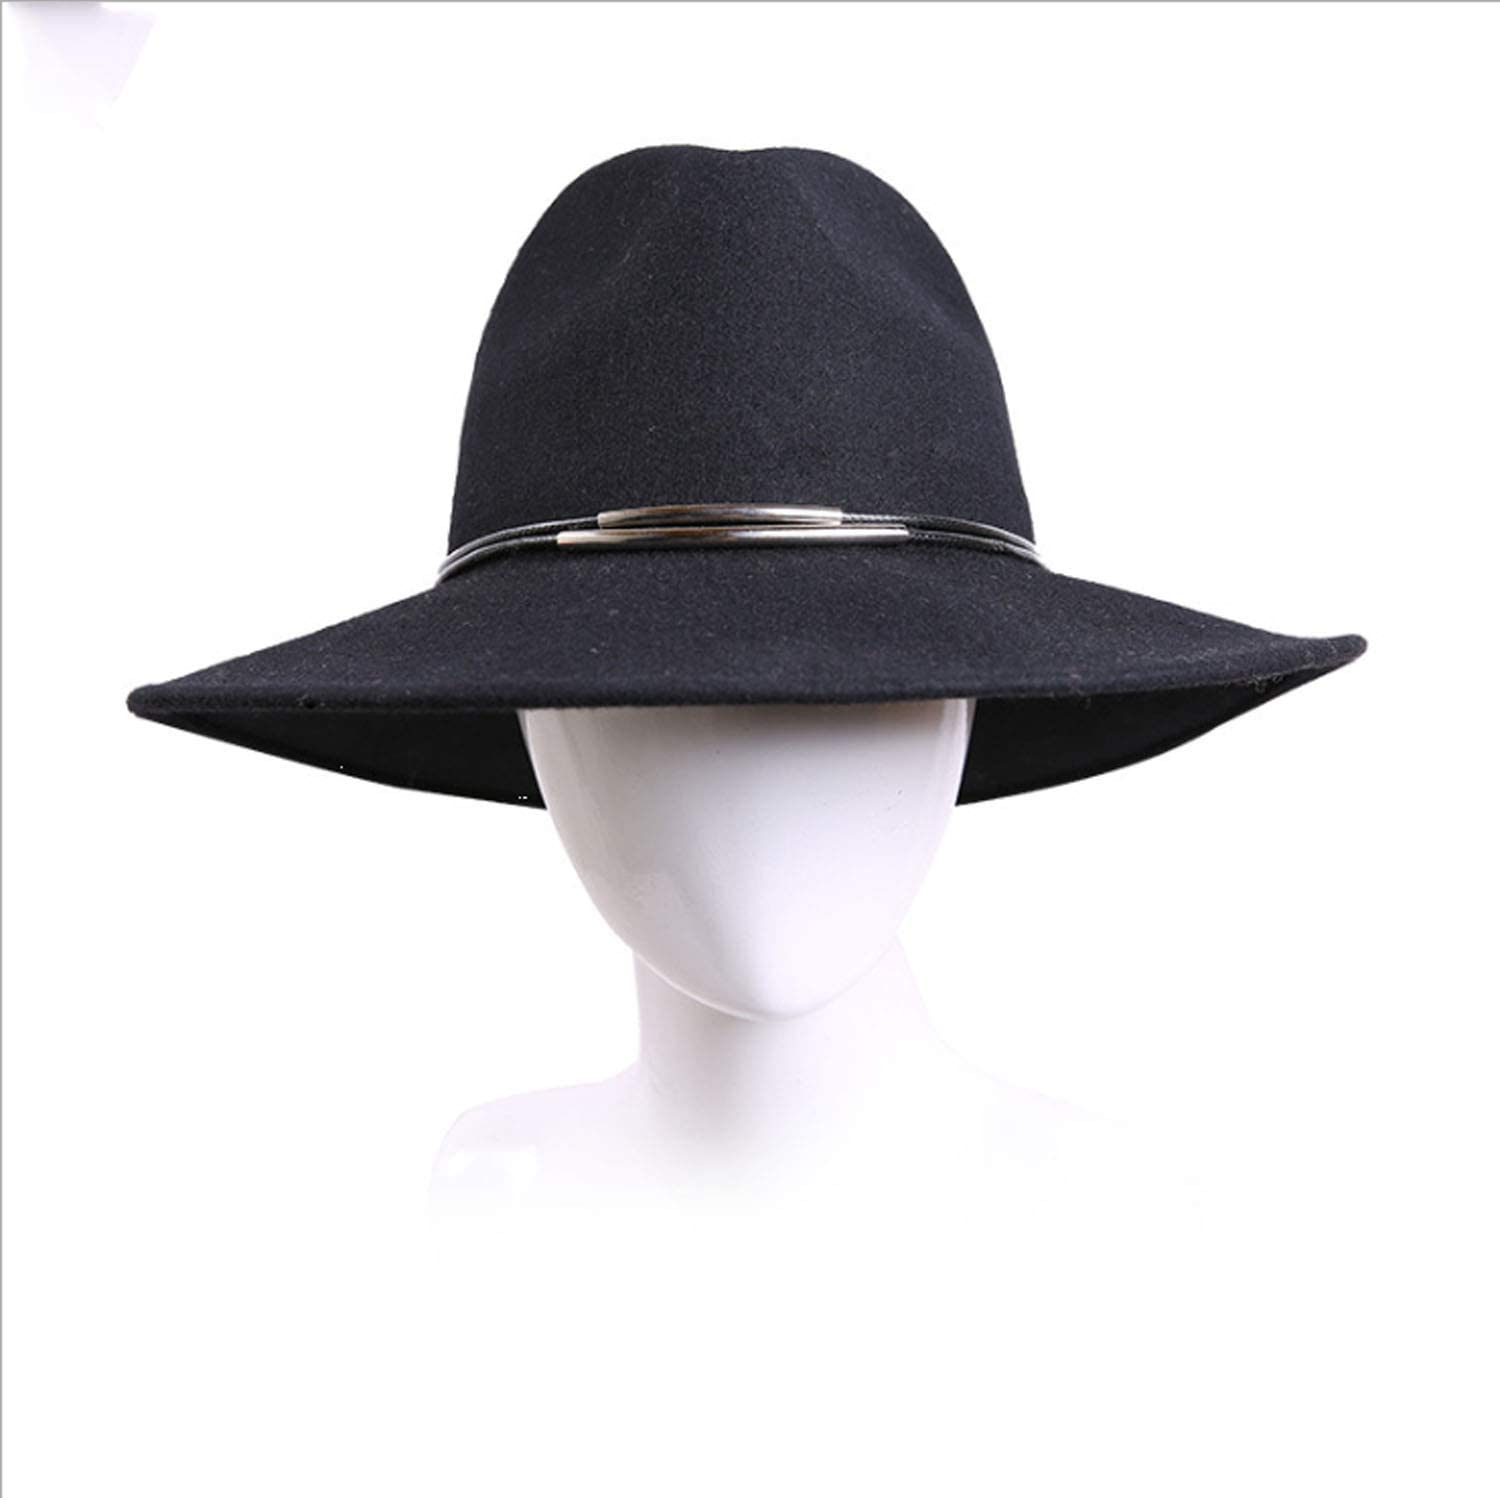 Hat Women Big Edge Wool Fashion Jazz Cap top hat Fall Winter (color   Black, Size   M)